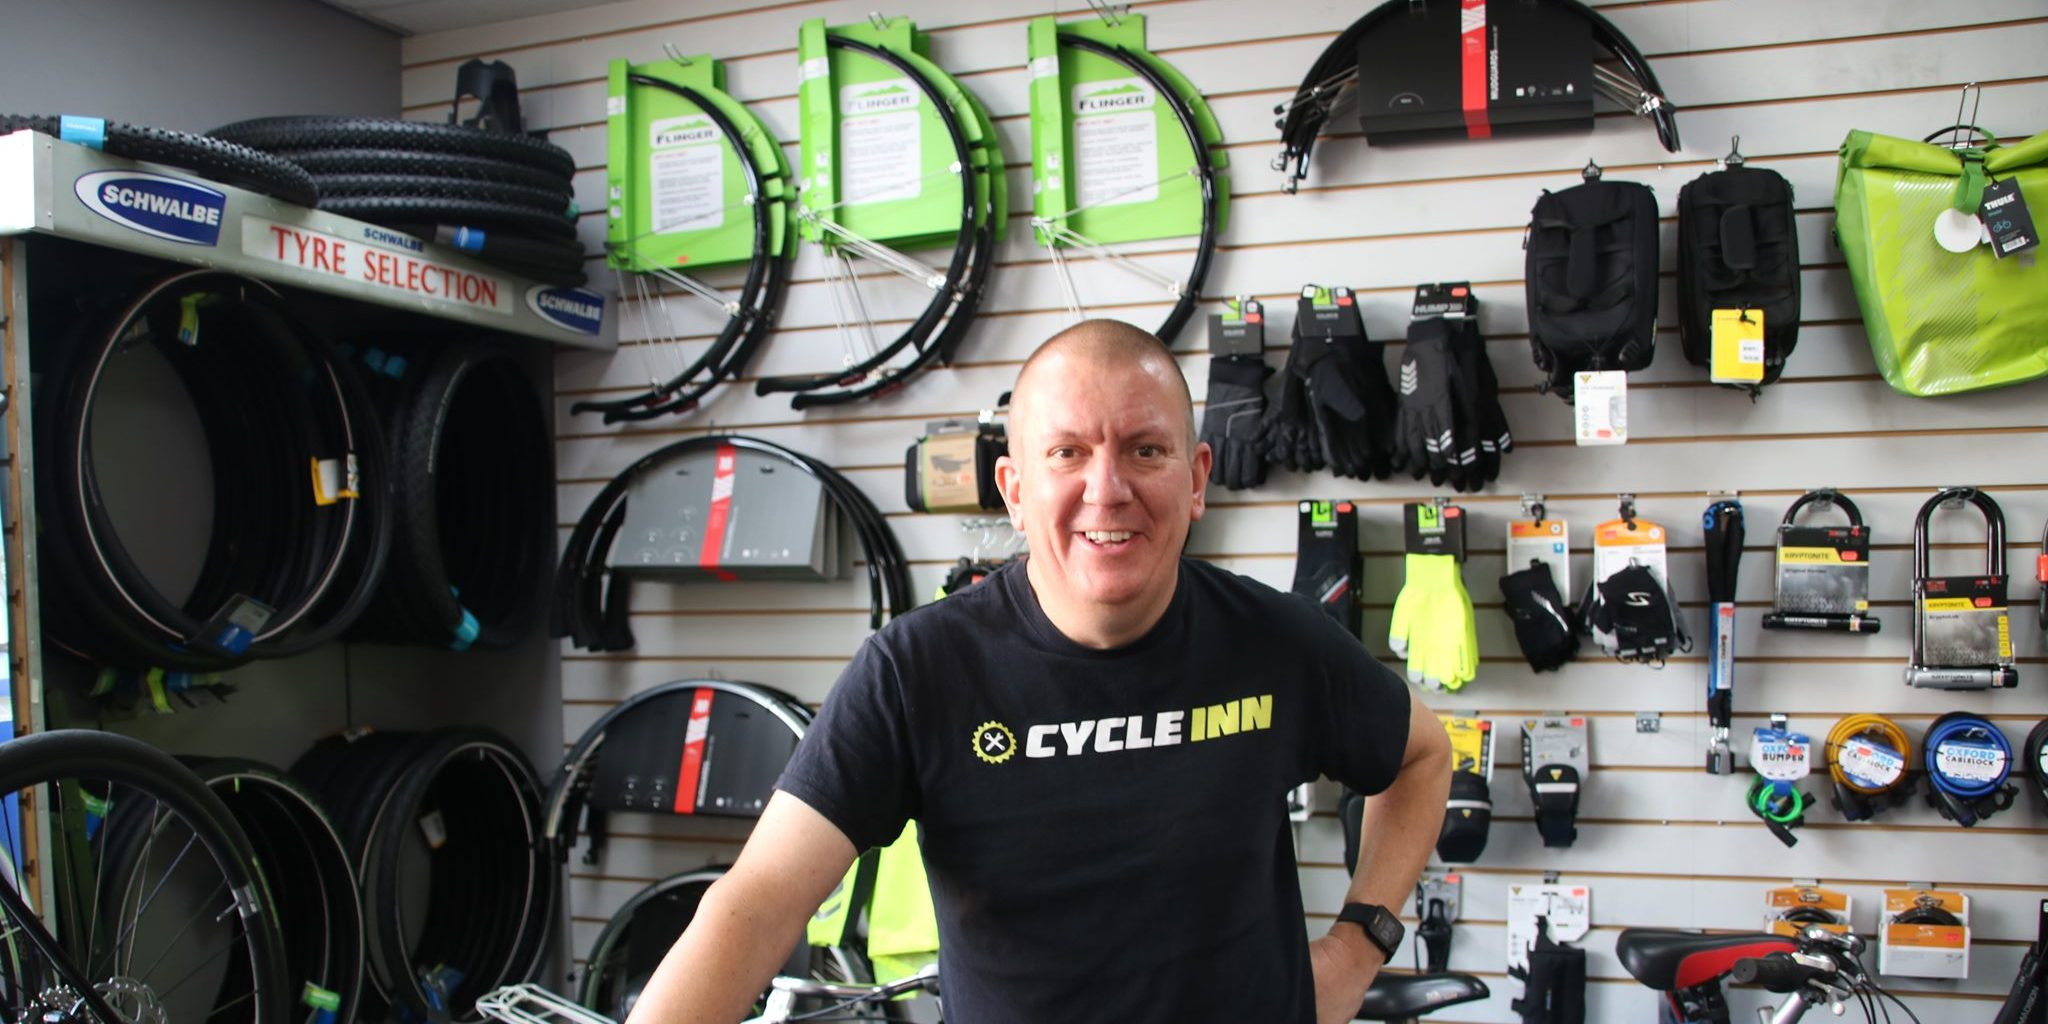 Jamie Ireland: owner, The Cycle Inn